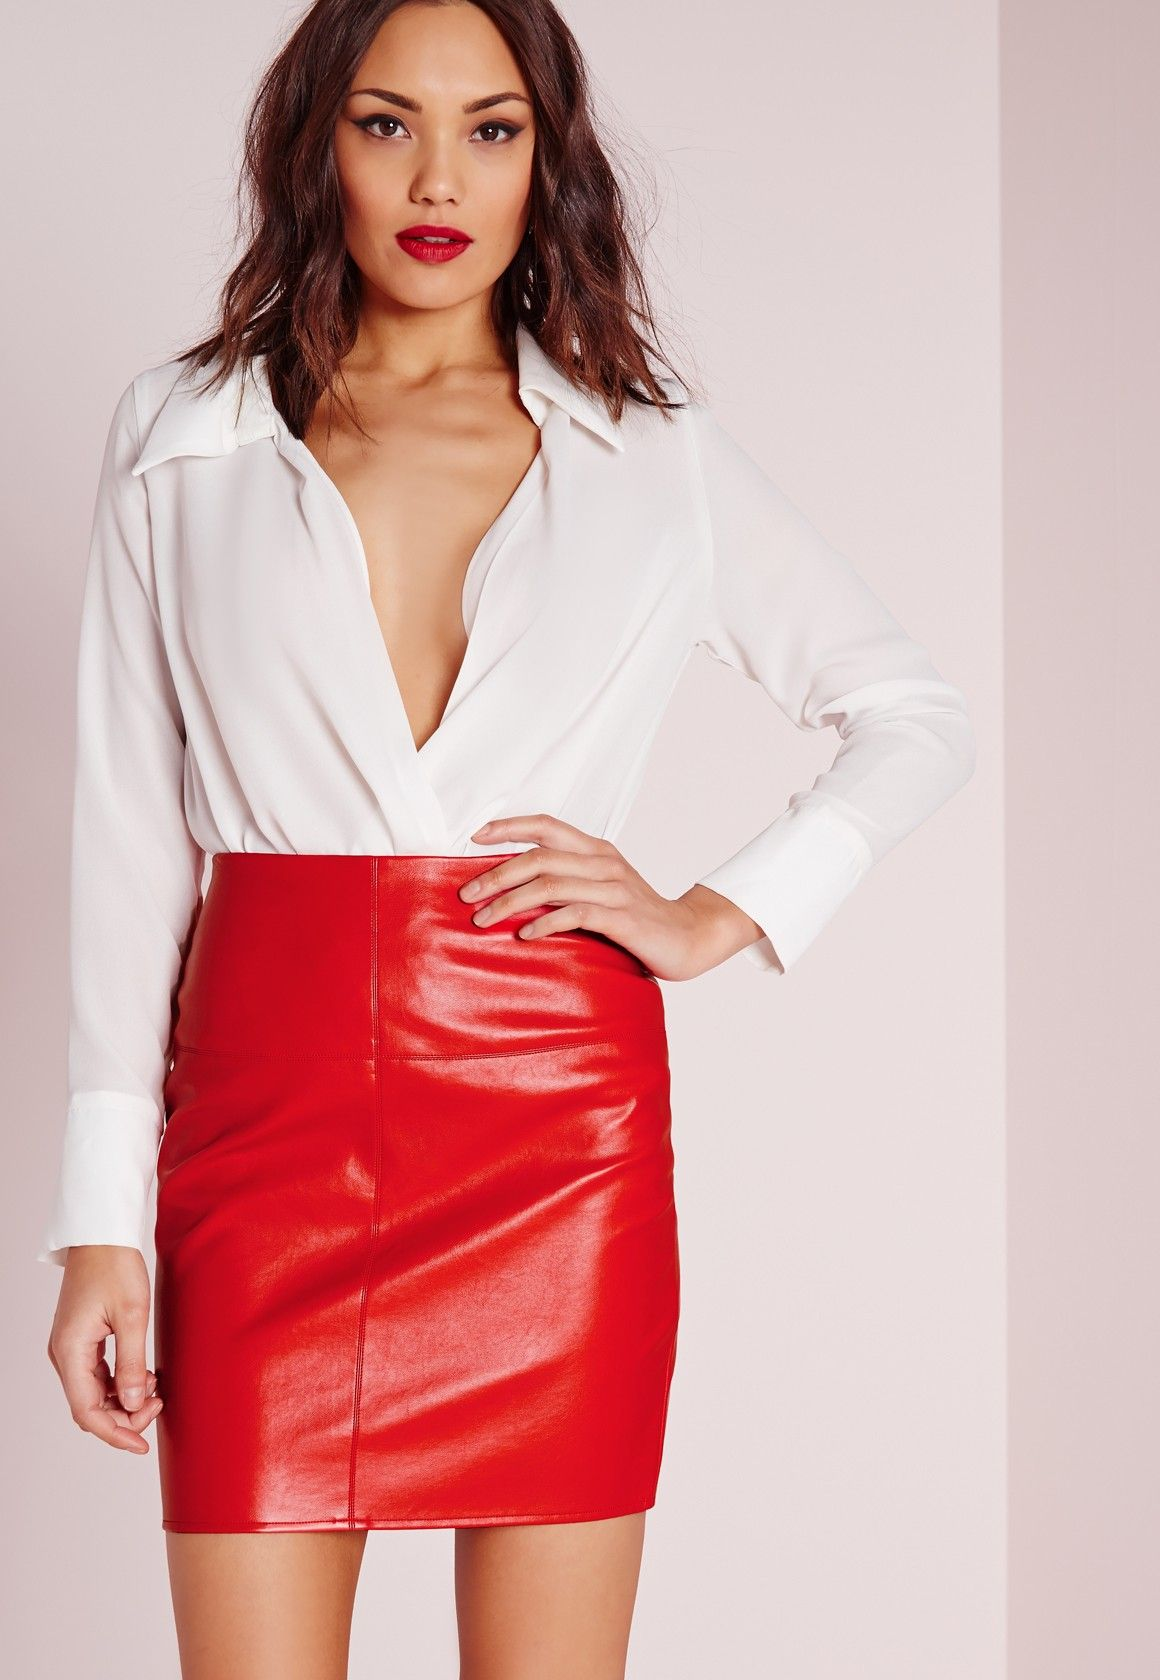 c73eb5414d1532 Missguided - Tall Faux Leather Mini Skirt Red | Fashion in 2019 ...